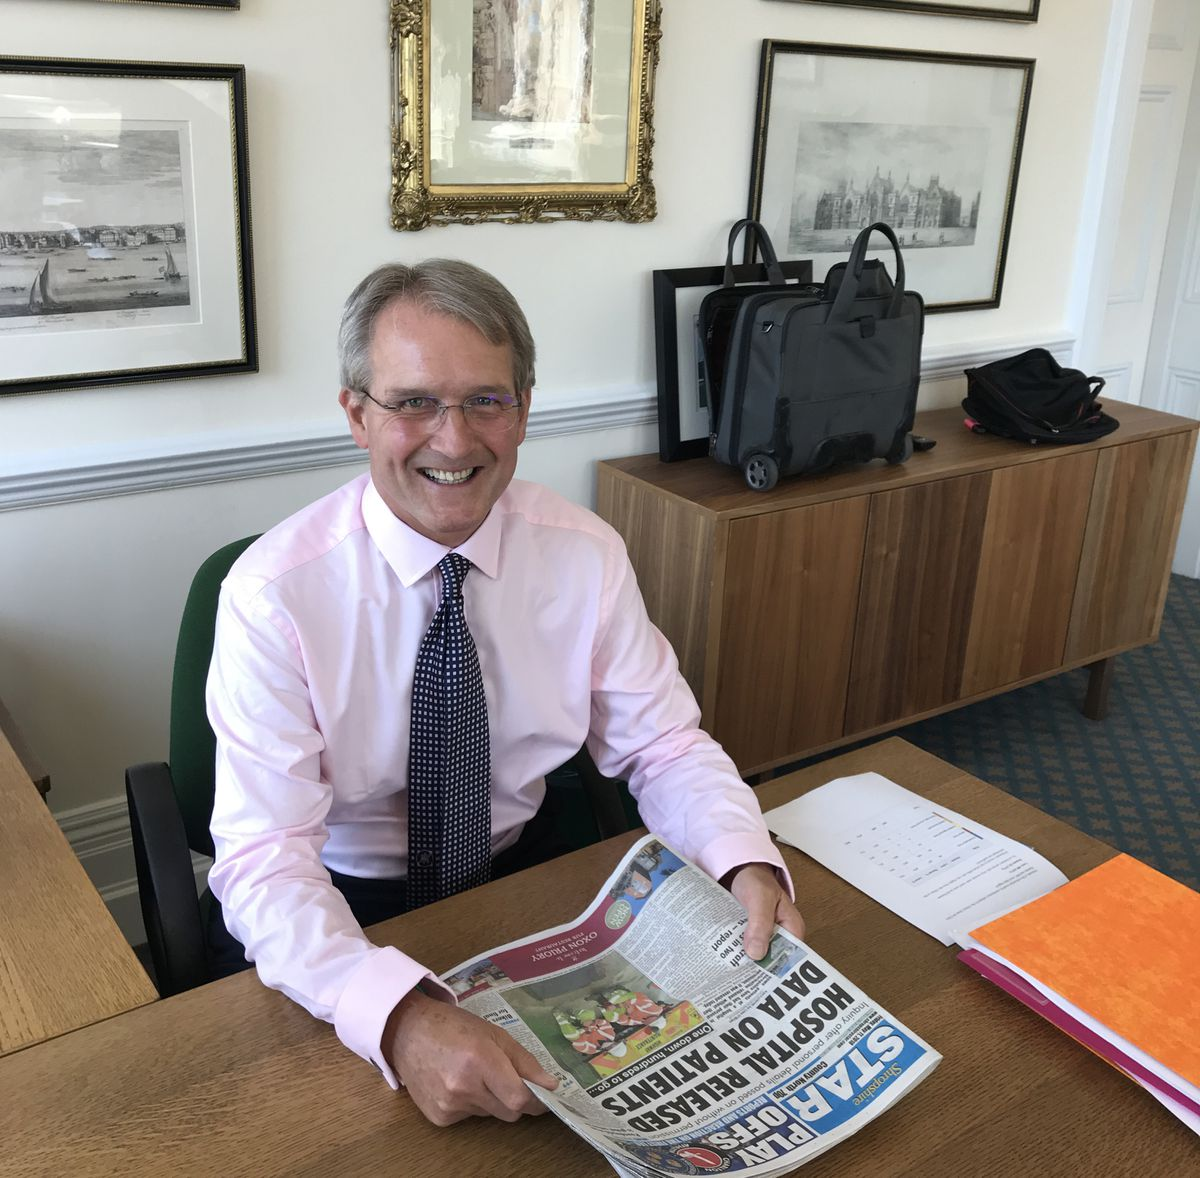 Owen Paterson is glad to be back catching up with the news behind his desk in Westminster